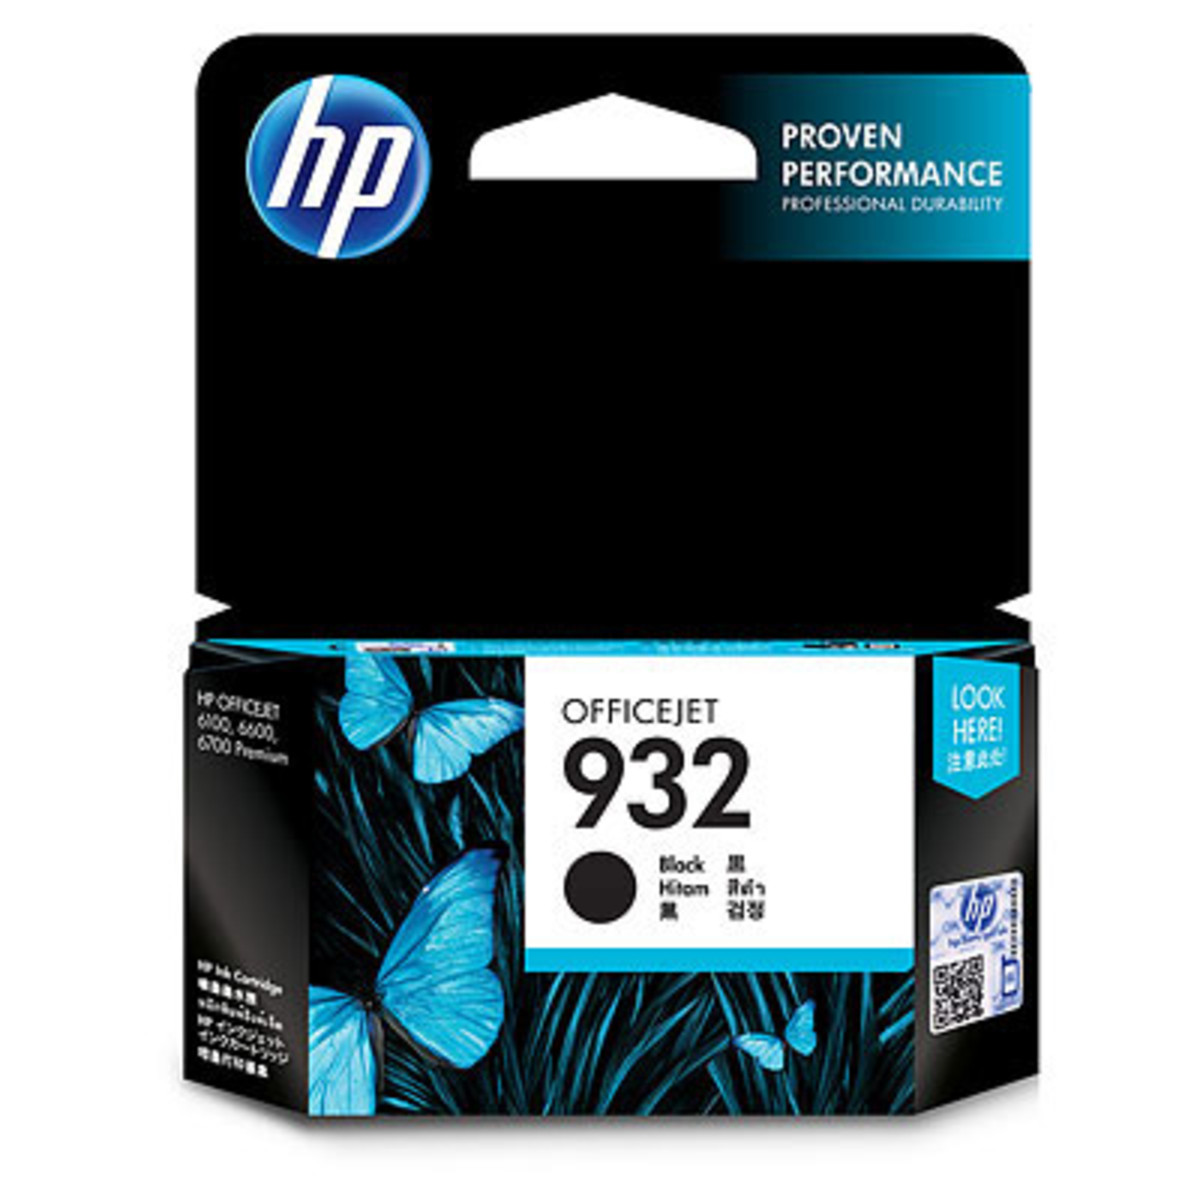 HP 932 (CN057AA) Black Ink Cartridge